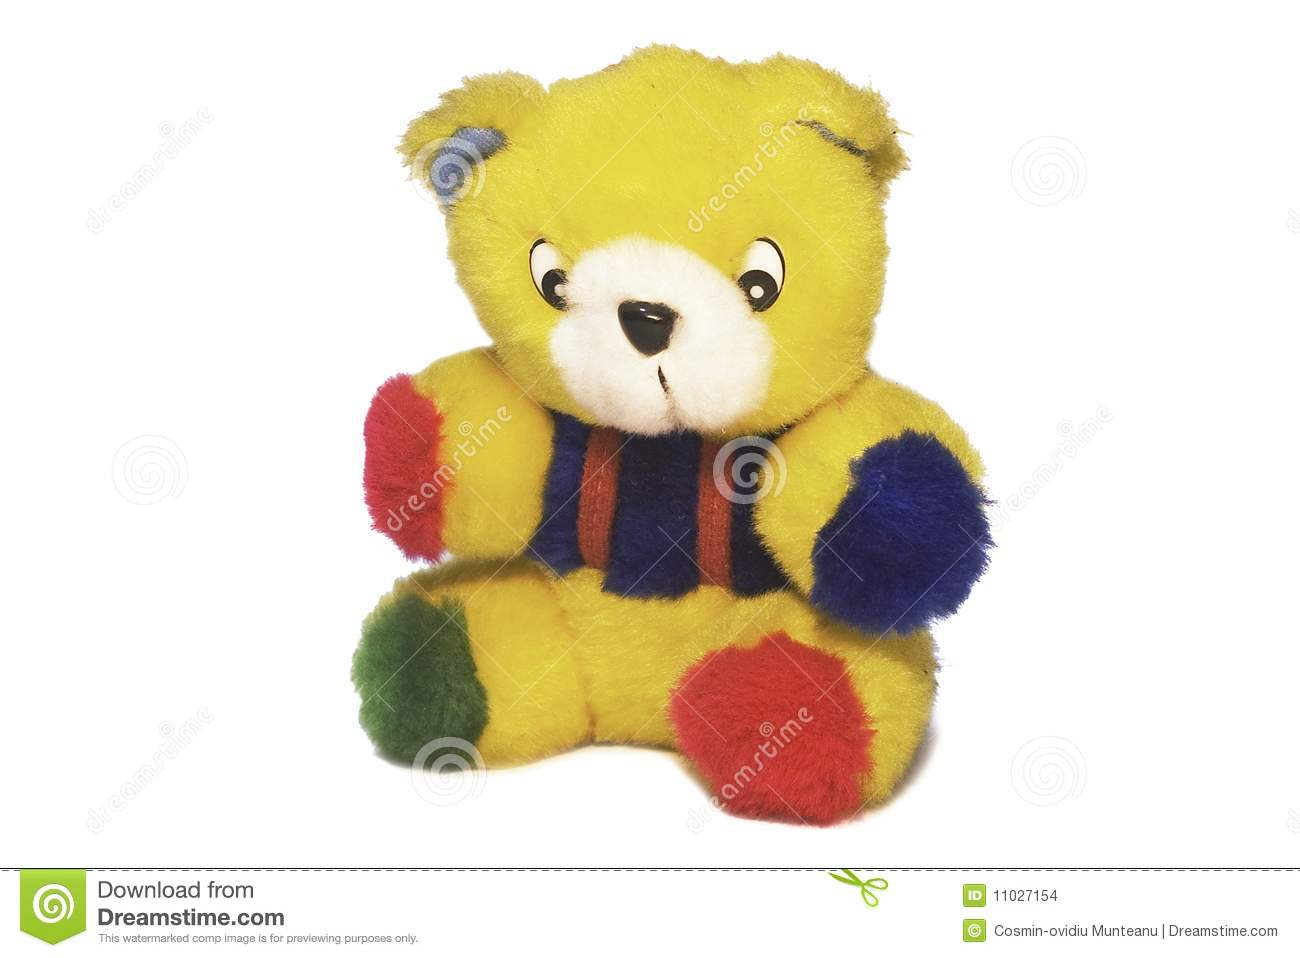 Colorful Teddy Bear Stock Images - Image: 11027154 - photo#5